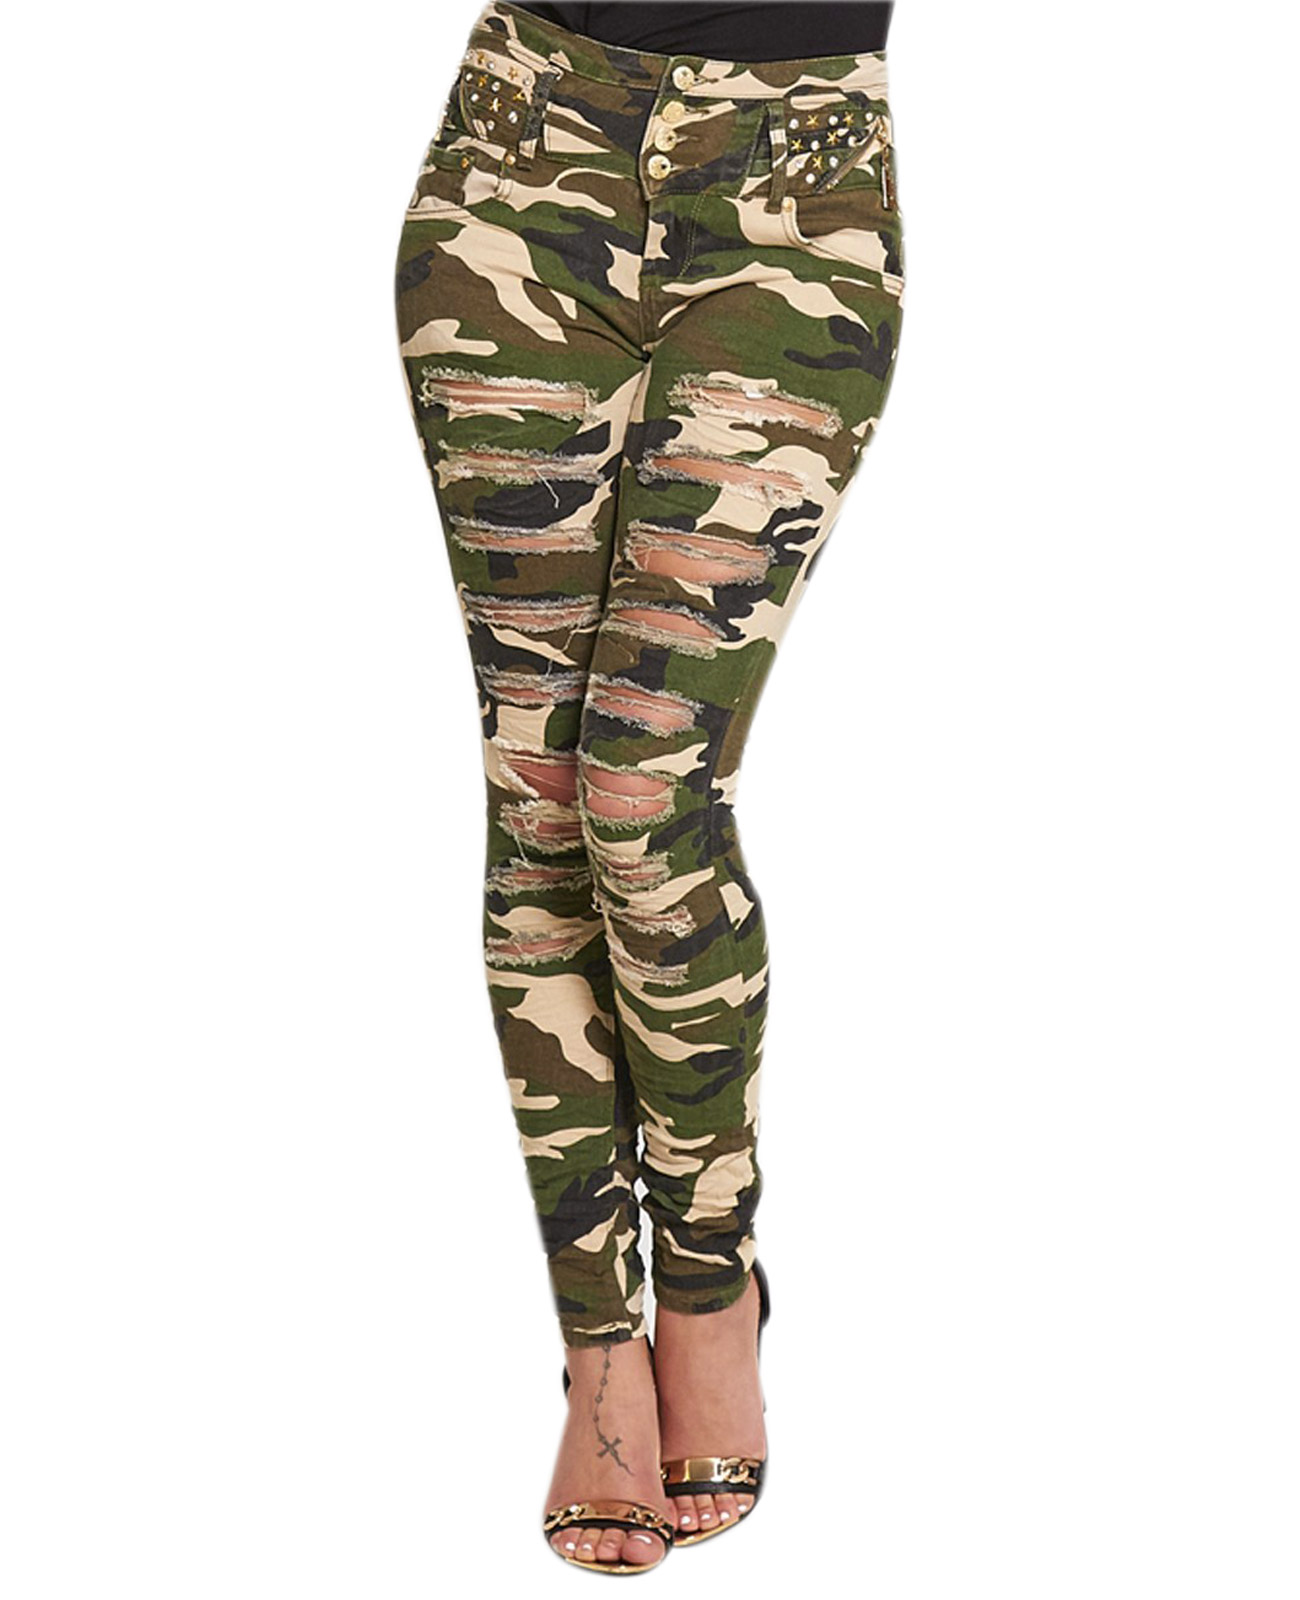 Shop for and buy womens camo jeans online at Macy's. Find womens camo jeans at Macy's. Macy's Presents: The Edit- A curated mix of fashion and inspiration Check It Out. Free Shipping with $49 purchase + Free Store Pickup. Contiguous US. camo skinny jeans womens; Apply. Filter By clear all. Free Pick Up In Store.